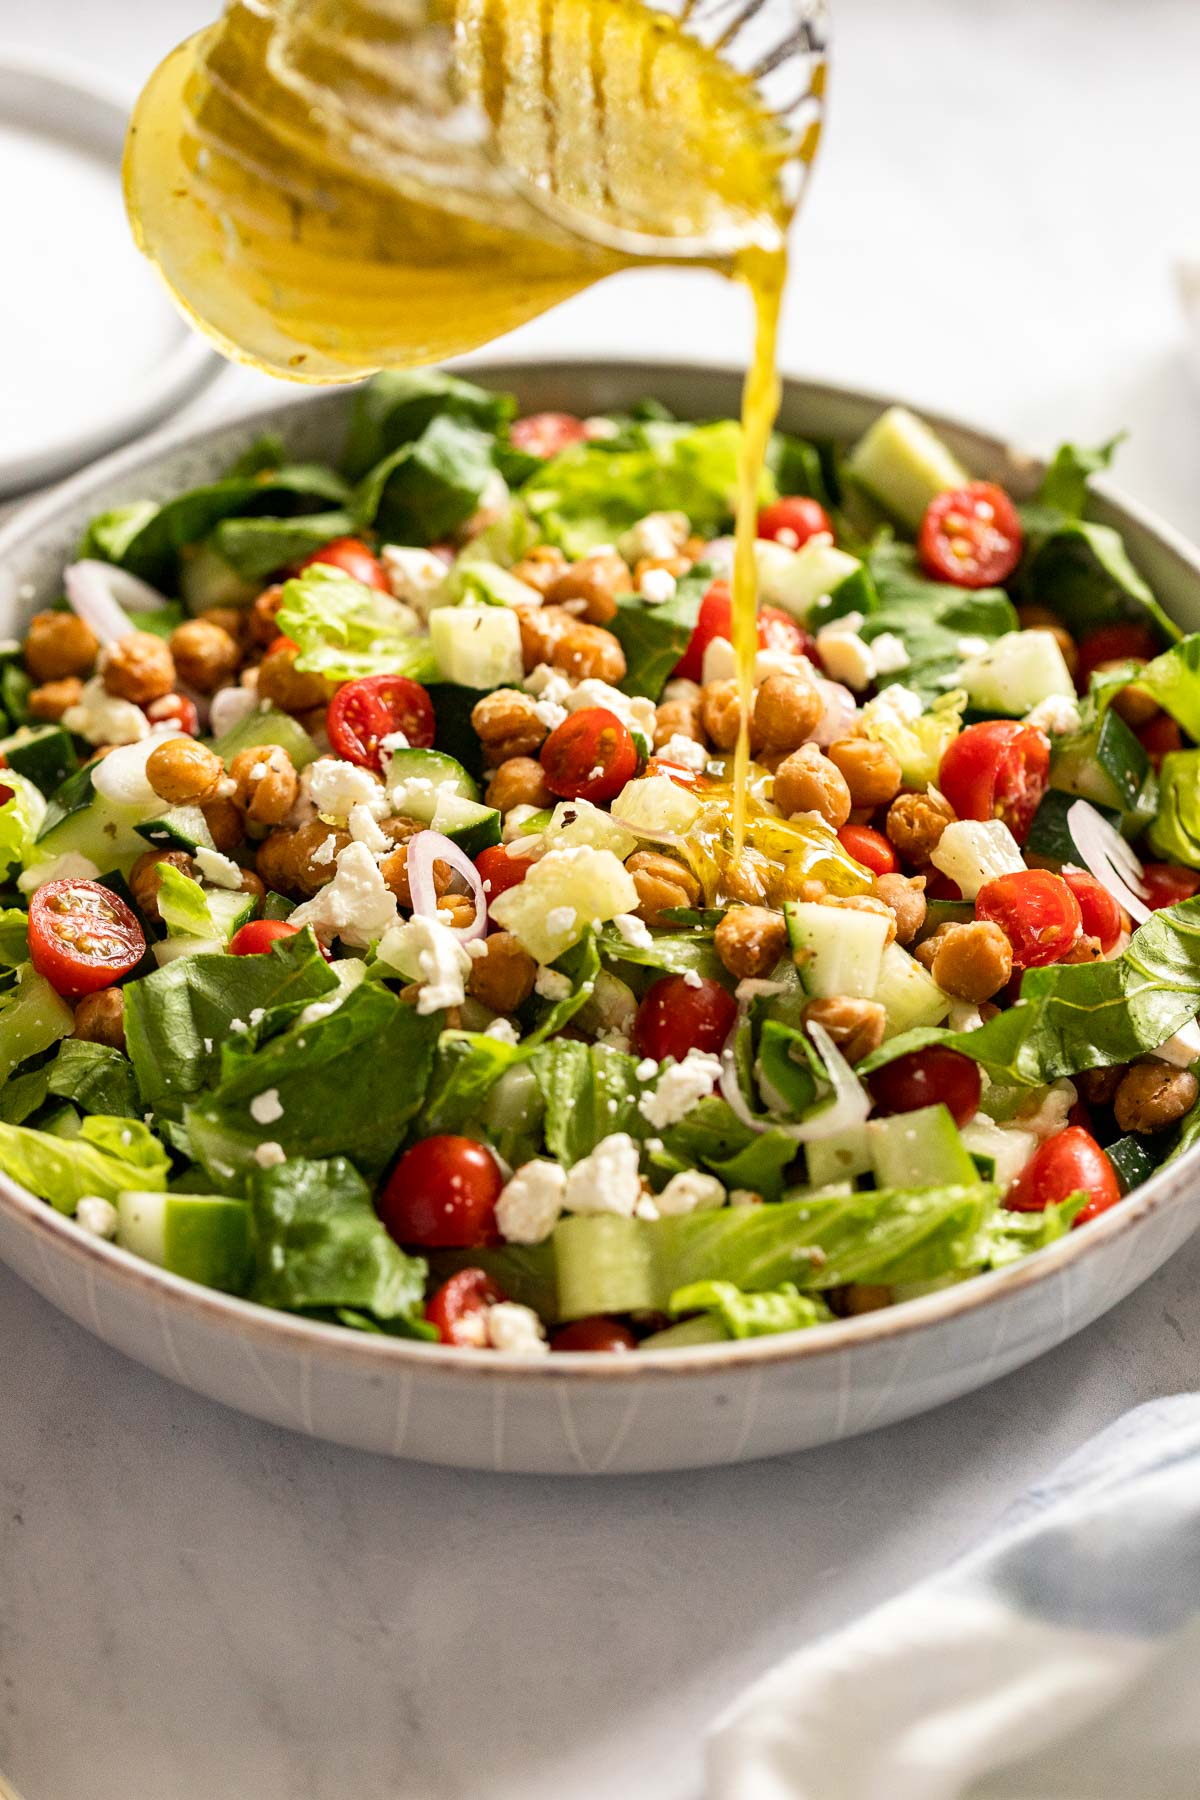 Pouring dressing onto salad in a bowl.